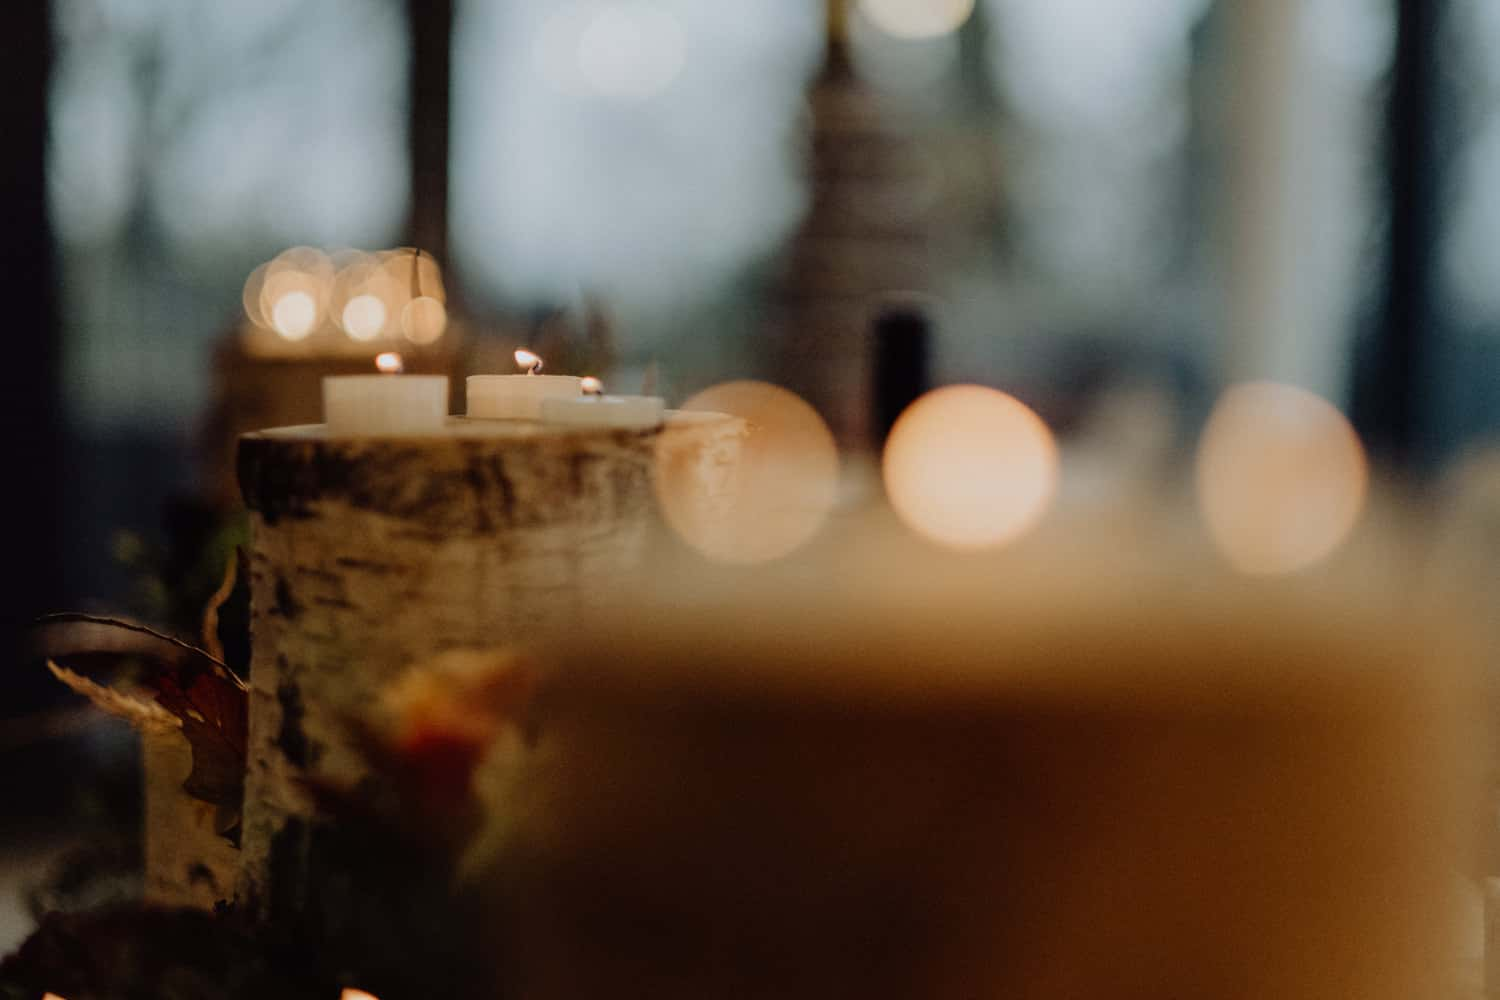 pretty shot of candles